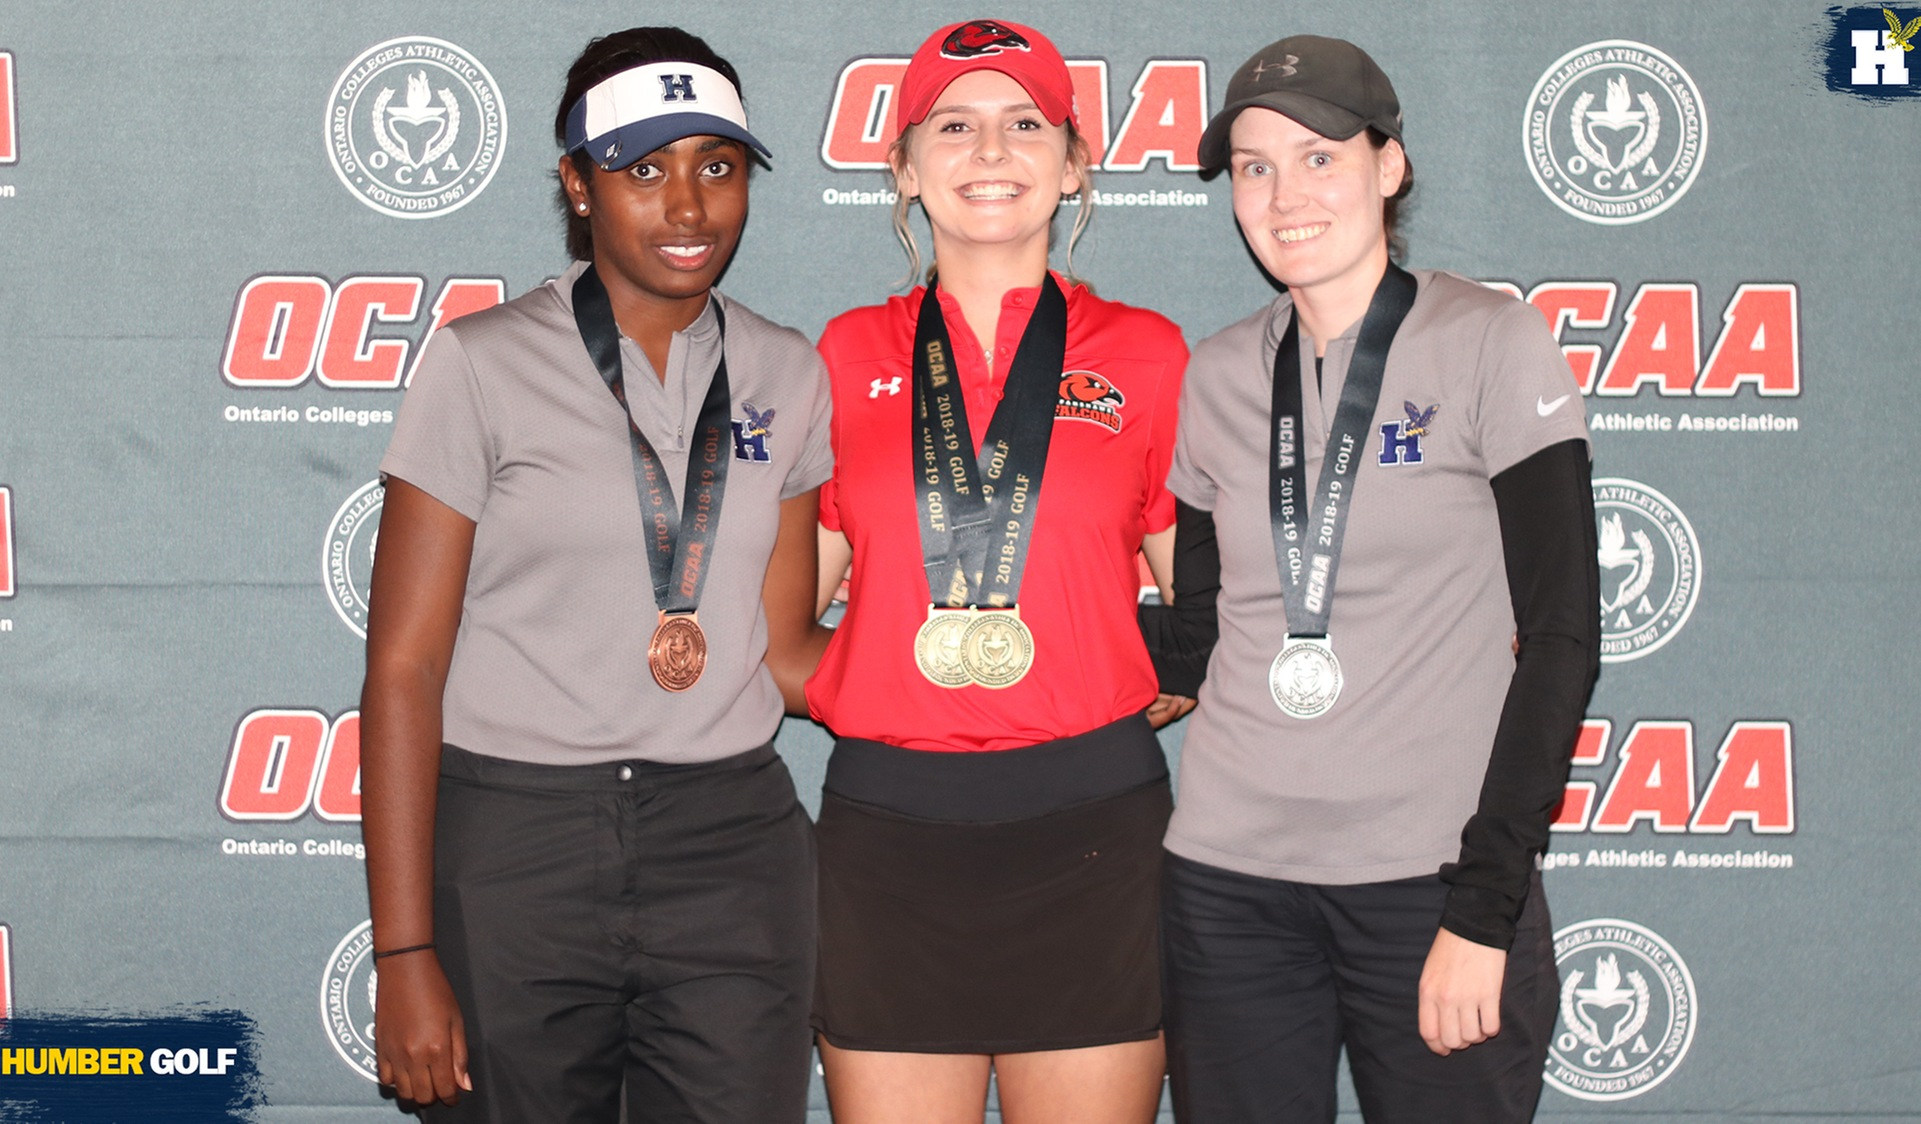 McCALLUM AND BANTON FINISH ON PODIUM AT OCAA GOLF CHAMPIONSHIP